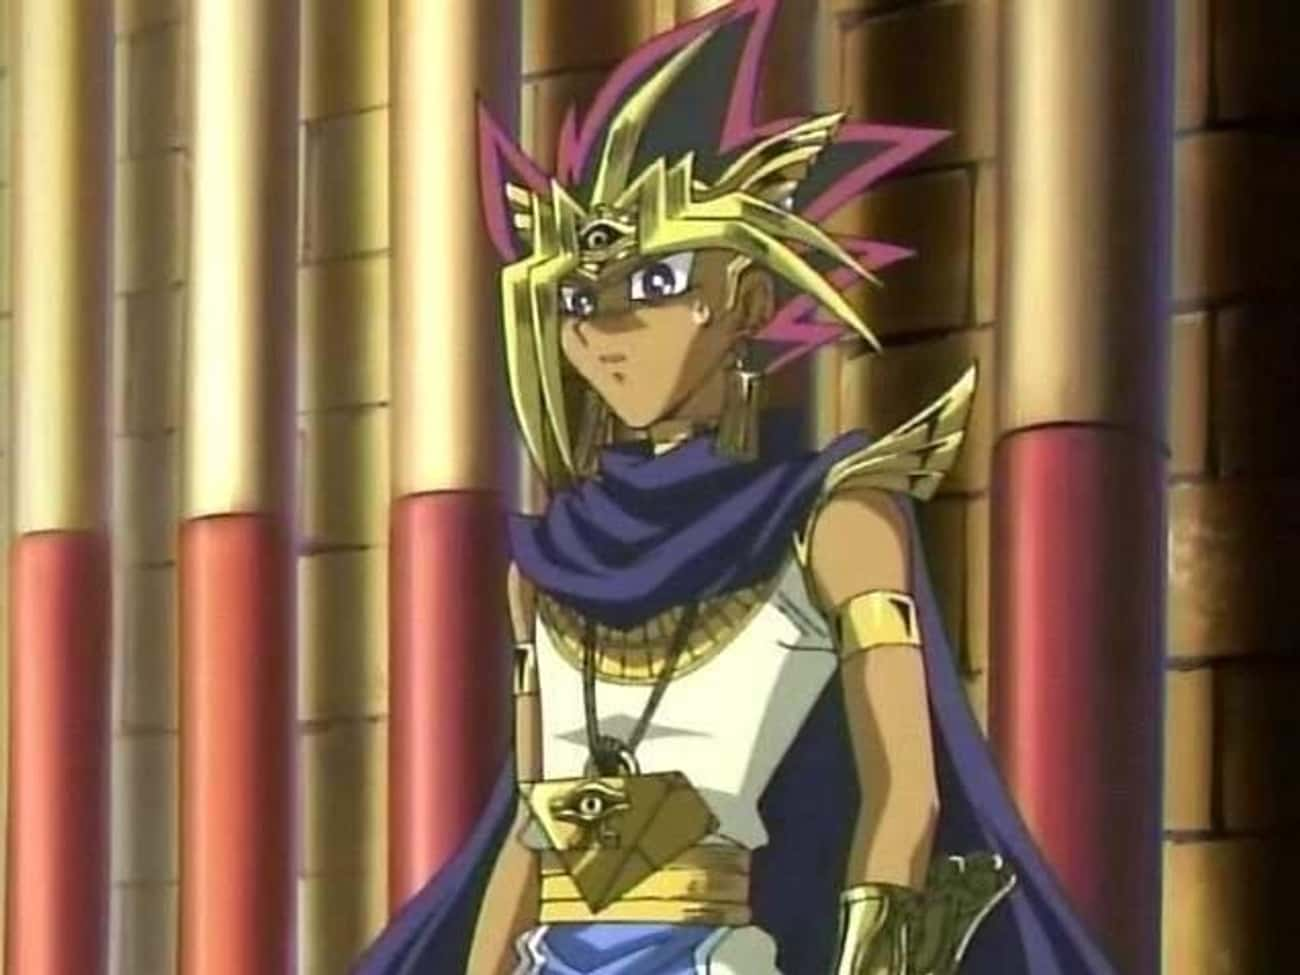 Yugi's Seemingly Themeless Dec is listed (or ranked) 3 on the list Yu-Gi-Oh! Fan Theories That'll Send Your Childhood To The Shadow Realm